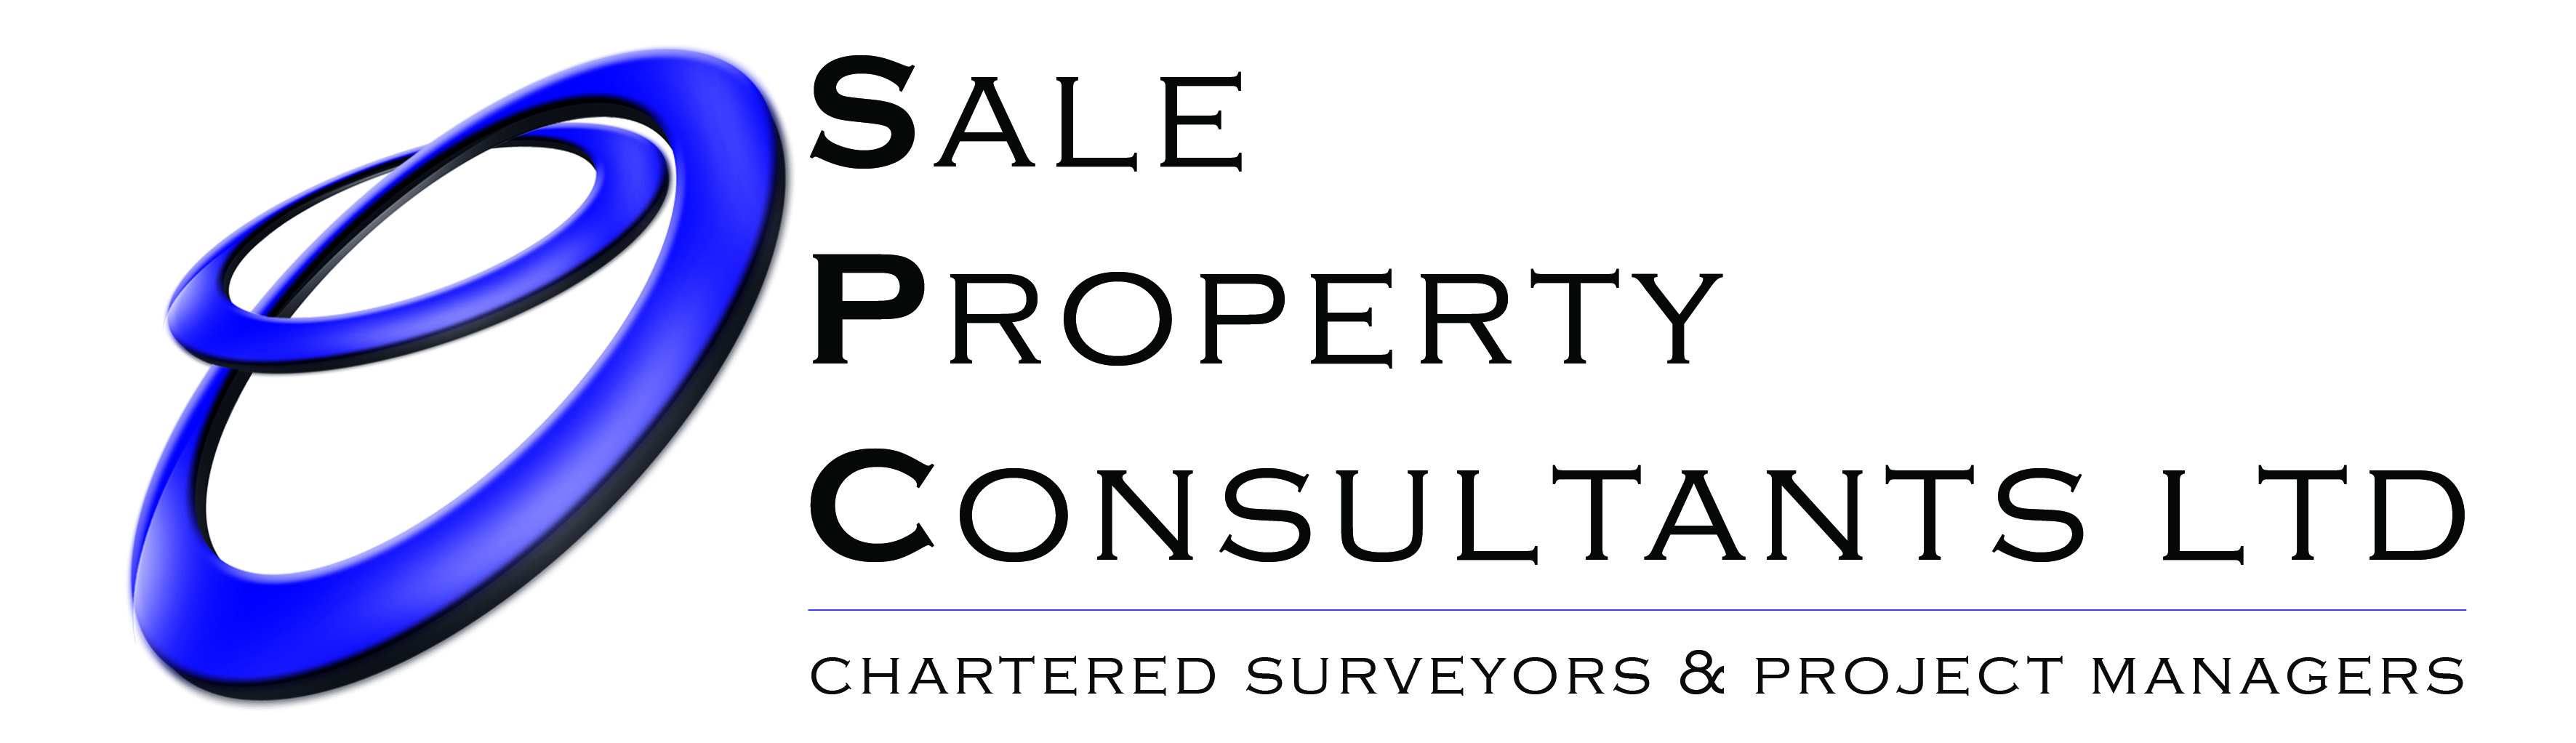 sale property consultants ltd